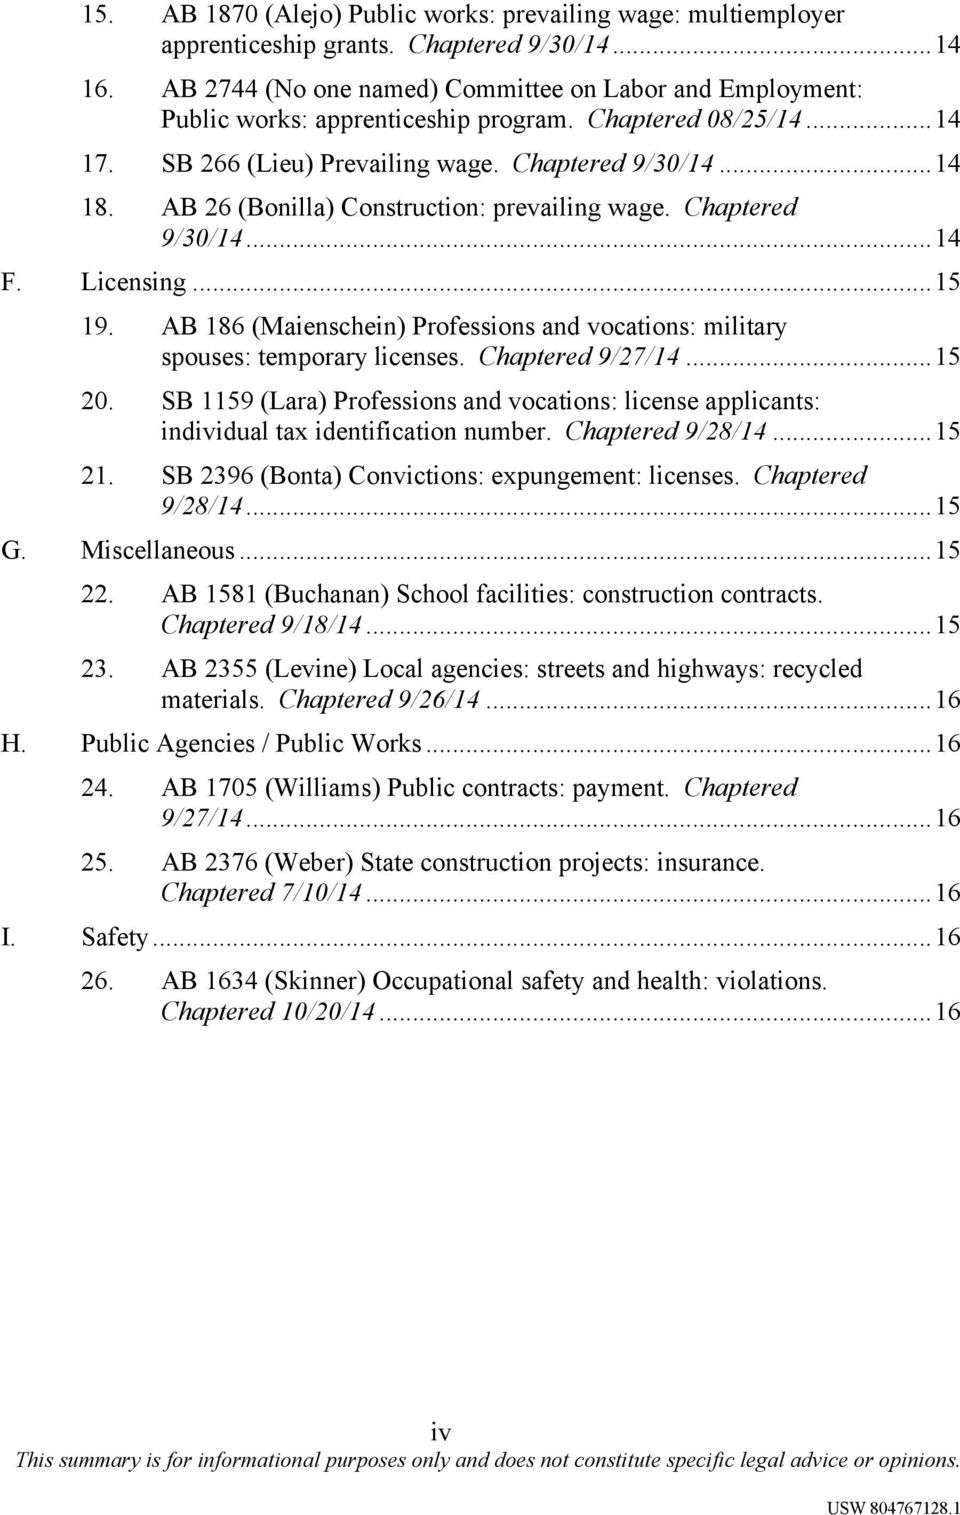 AB 26 (Bonilla) Construction: prevailing wage. Chaptered 9/30/14...14 F. Licensing...15 19. AB 186 (Maienschein) Professions and vocations: military spouses: temporary licenses. Chaptered 9/27/14.